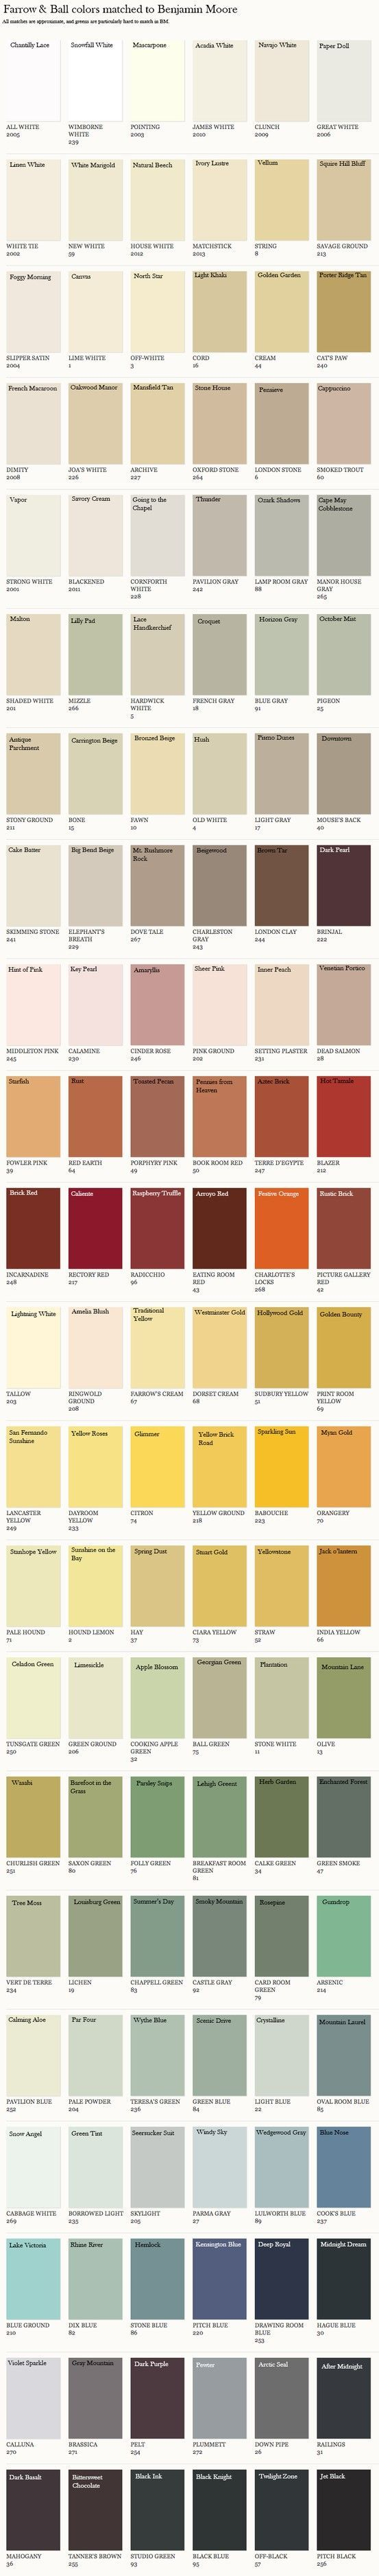 Farrow Ball Colors Matched To Benjamin Moore The English Room Matching Paint Colors Kitchen Paint Colors House Colors